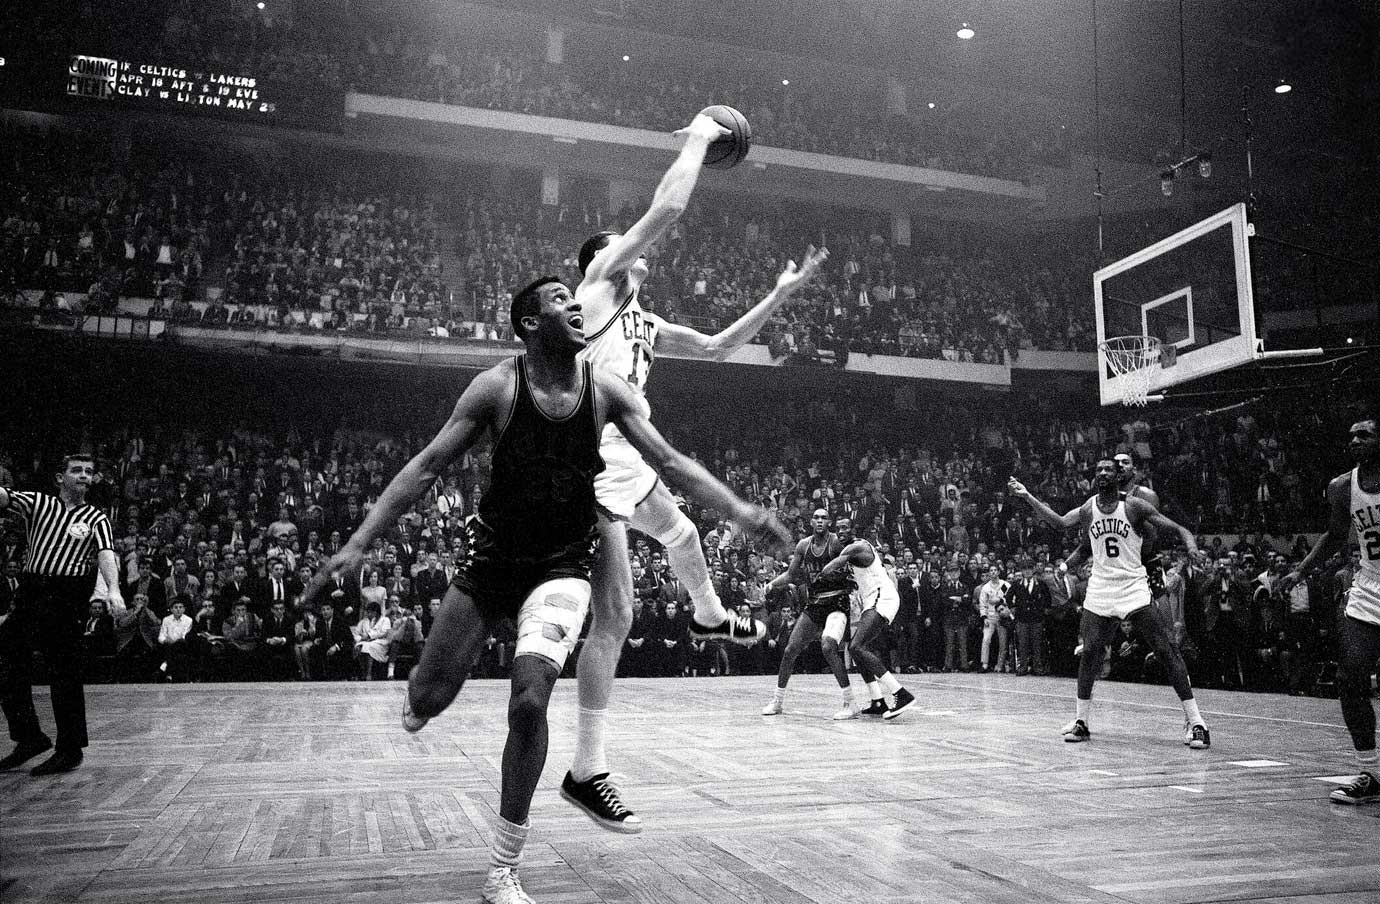 """Havlicek stole the ball!"" Celtics broadcaster Johnny Most's call describing the final seconds of Game 7 of the Eastern Division Finals is one of the most memorable in NBA history. Boston held on to a 110-109 victory over the Philadelphia 76ers after John Havlicek tipped Hal Greer's inbounds pass, intended for Chet Walker, toward teammate Sam Jones. The Celtics would go on to win their seventh consecutive NBA title, defeating the Lakers in five games."